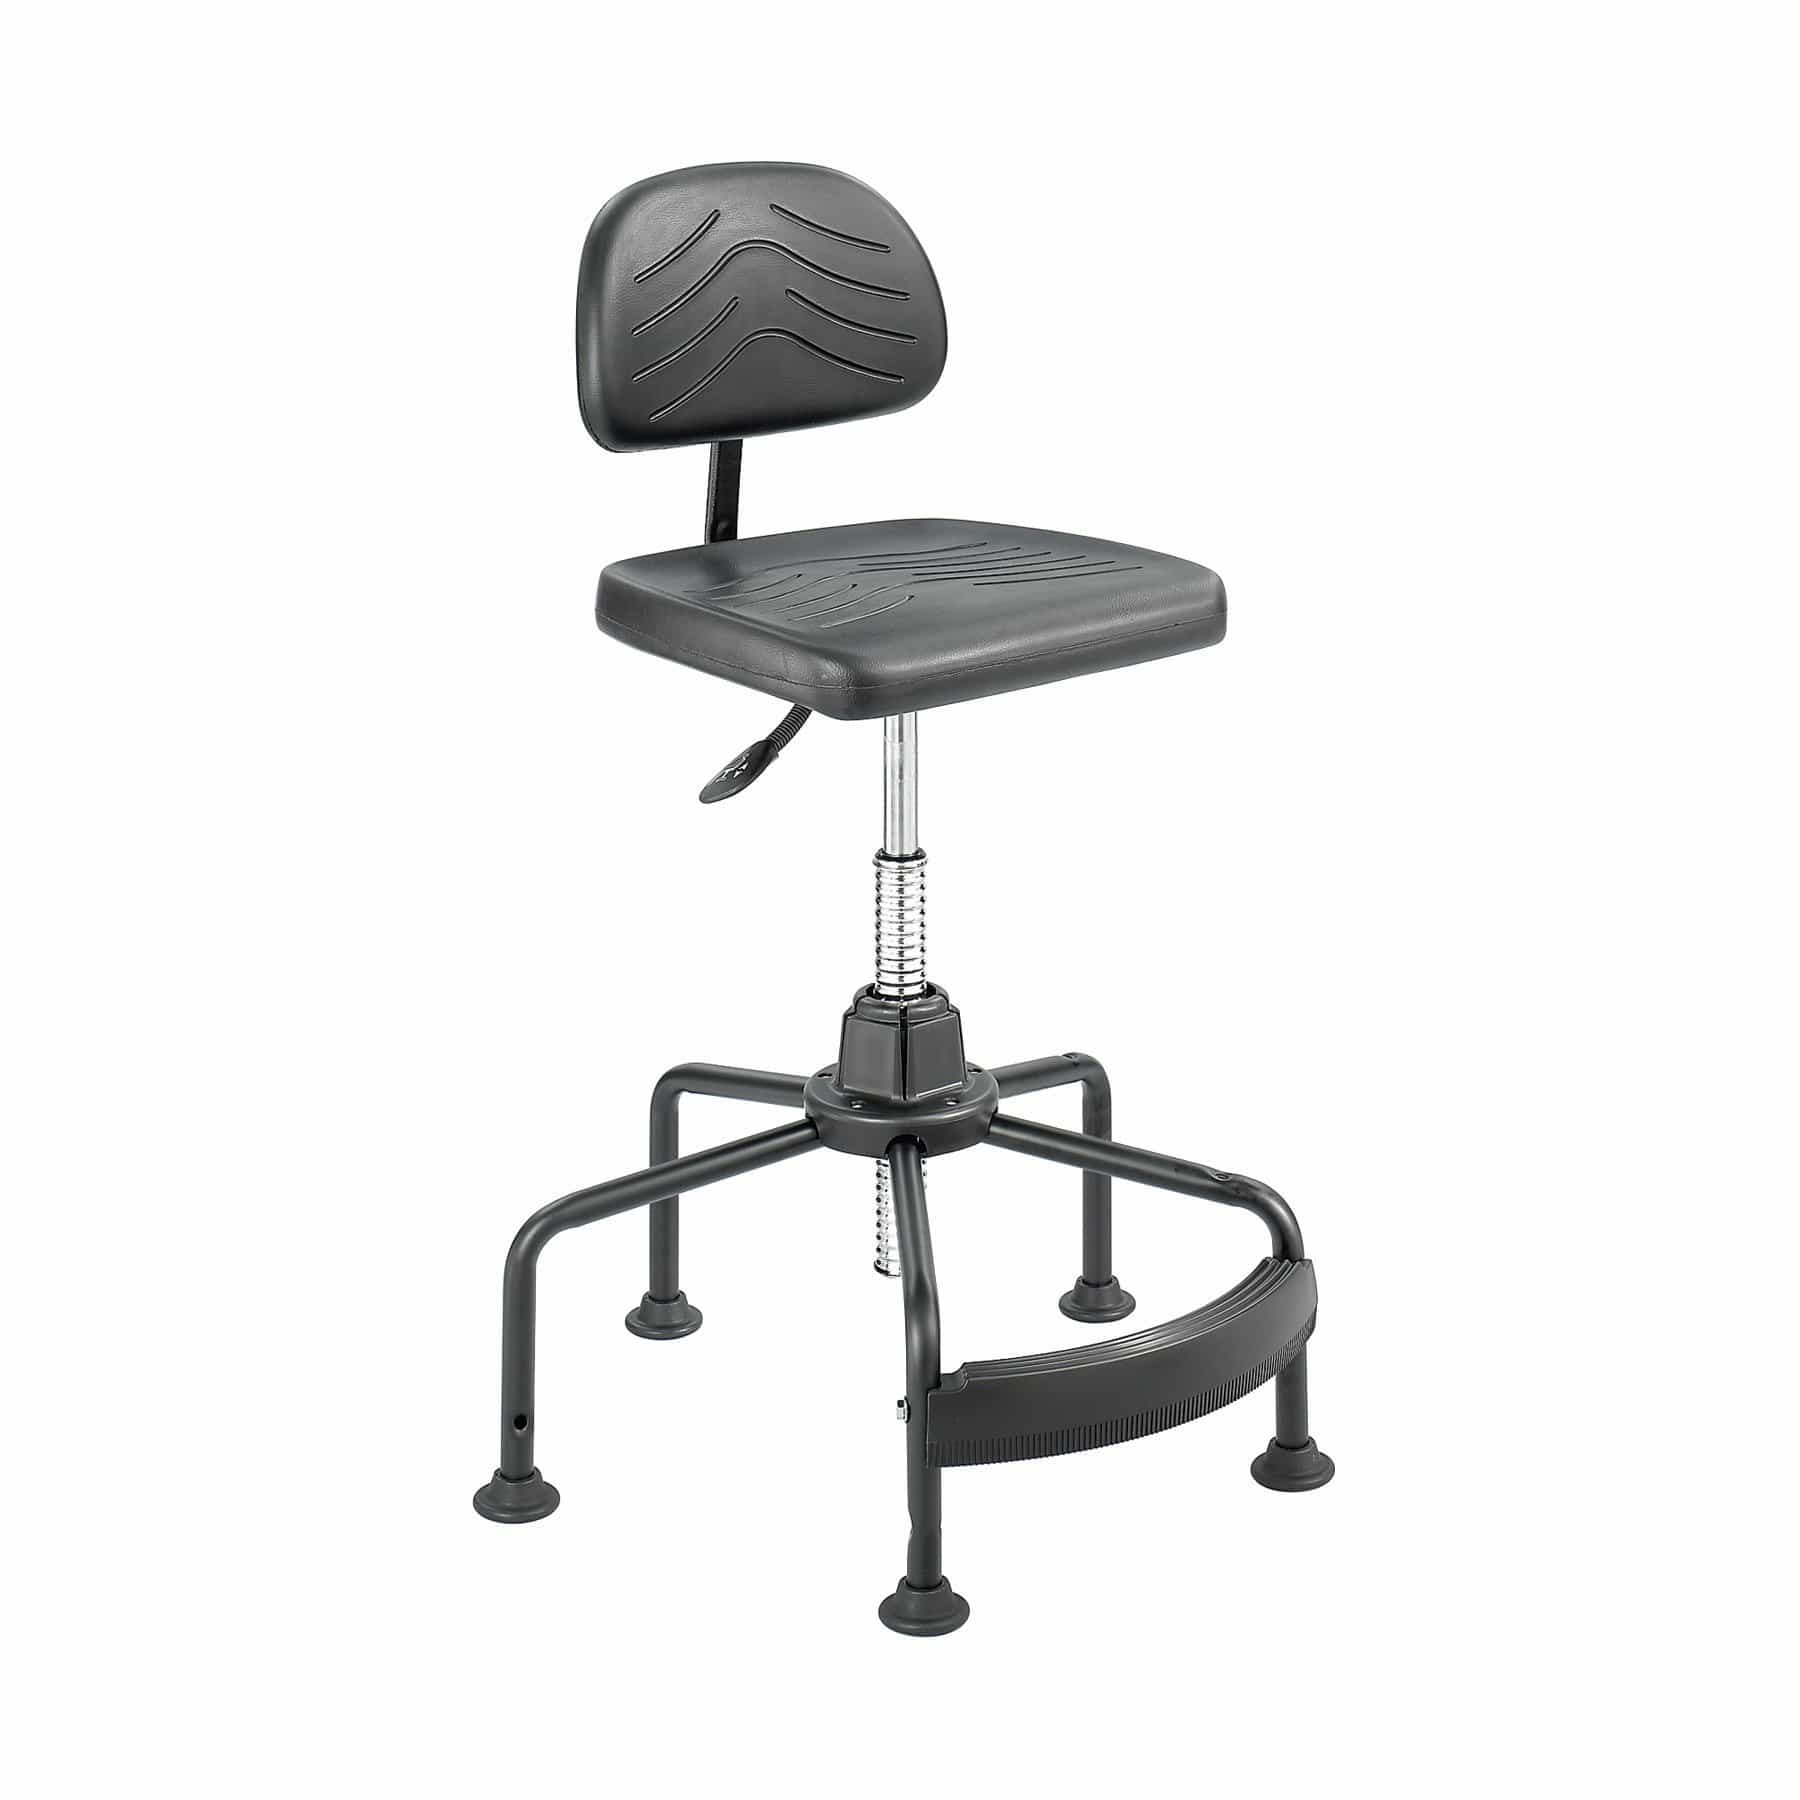 bedinhome - Industrial Seating Black Polyurethane Task Master Economy Industrial Chair - Safco - Economy Industrial Chair